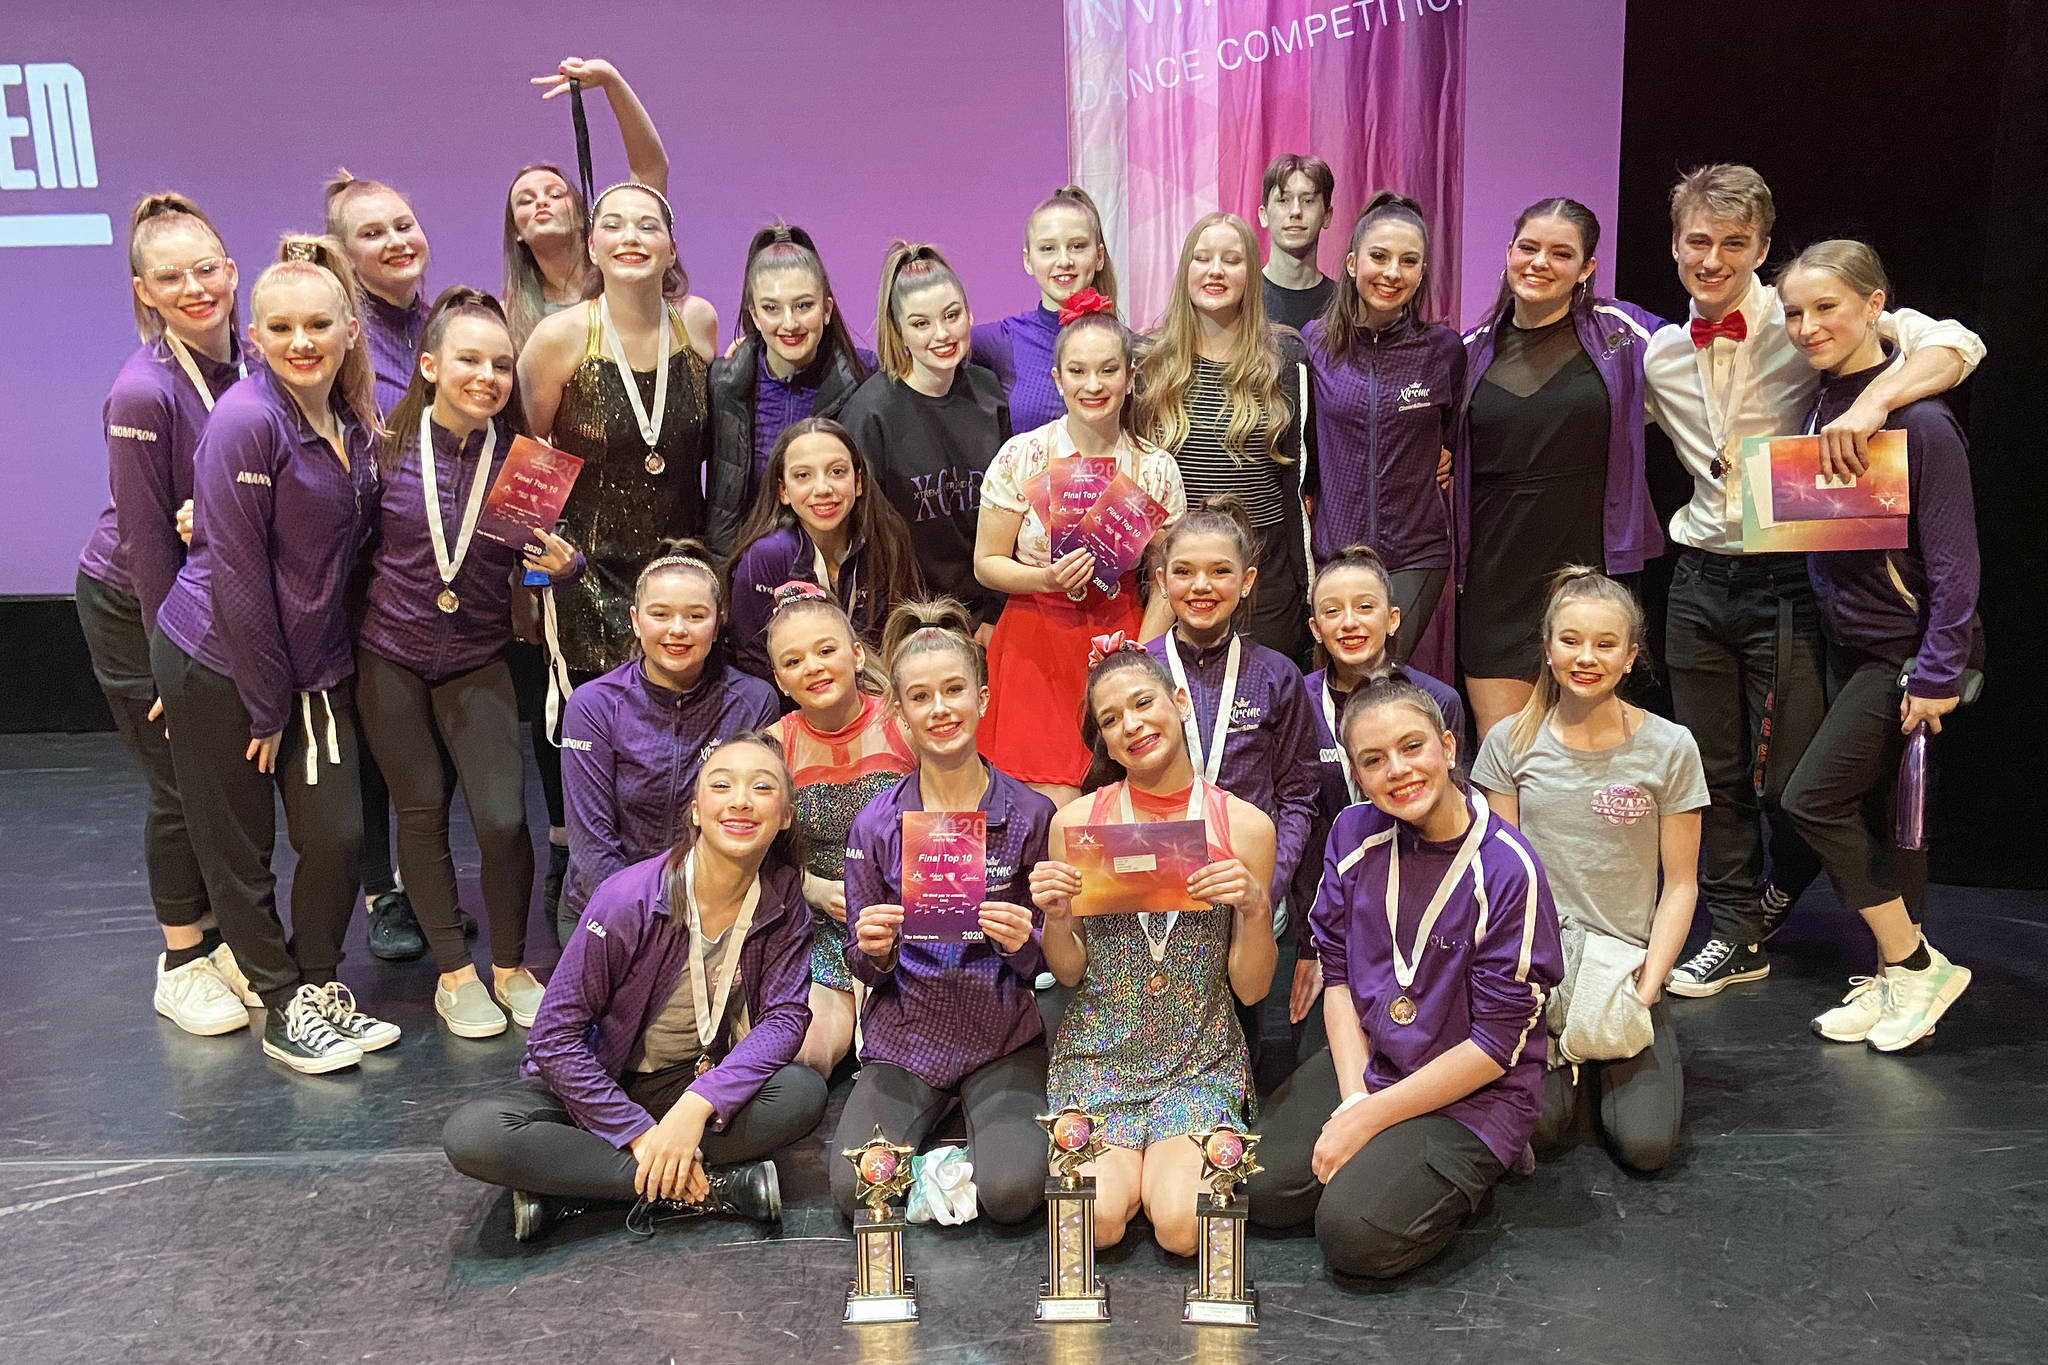 Langley Extreme Cheer and Dance competitors pose with their awards at the Peak Invitational in March in Surrey, the first, and so far only, major competition they've been able to attend. (special to Langley Advance Times